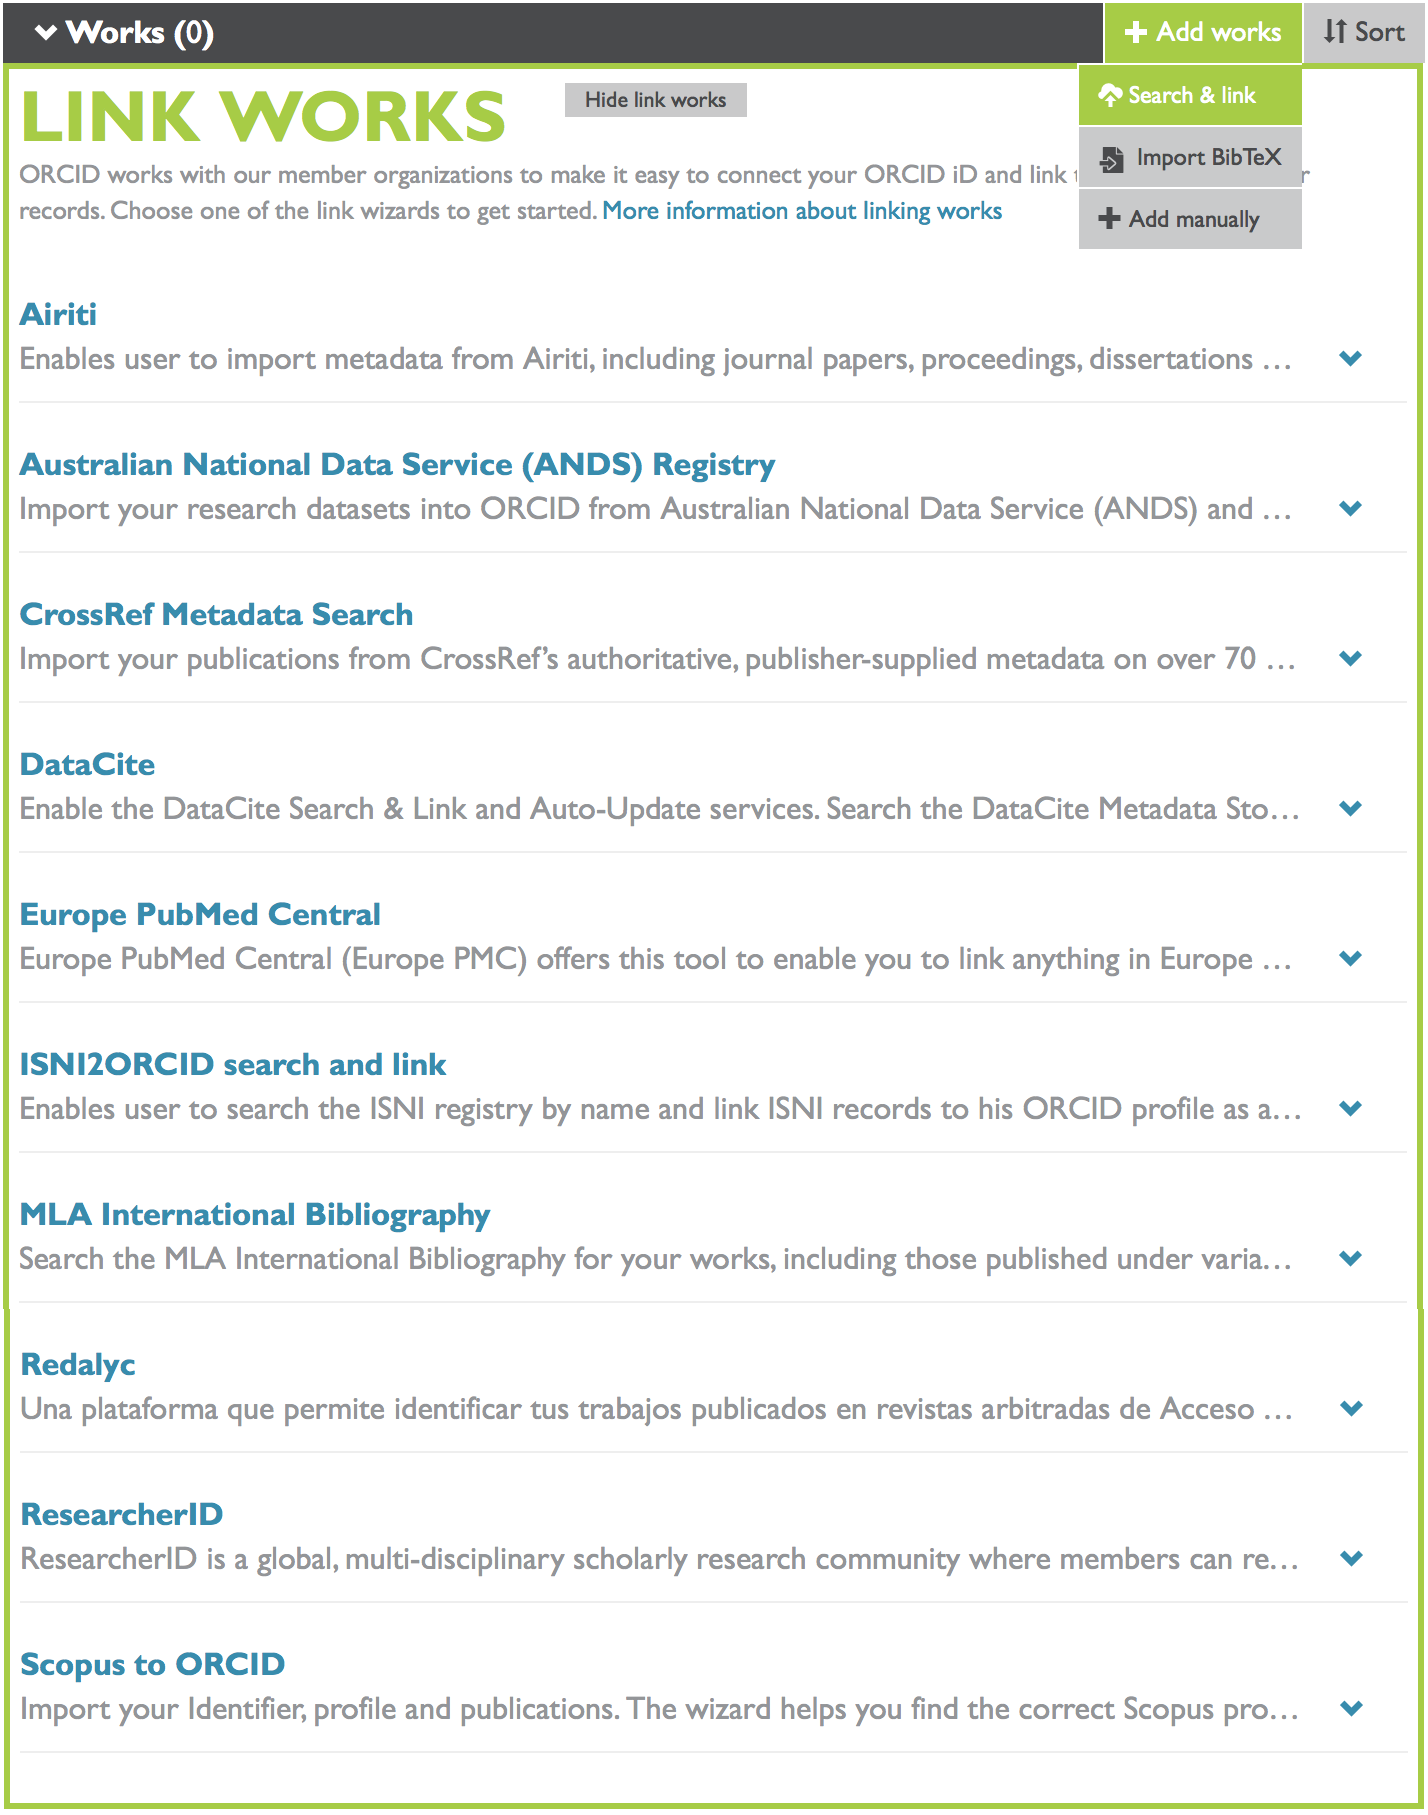 Search and link works to ORCID profile screenshot